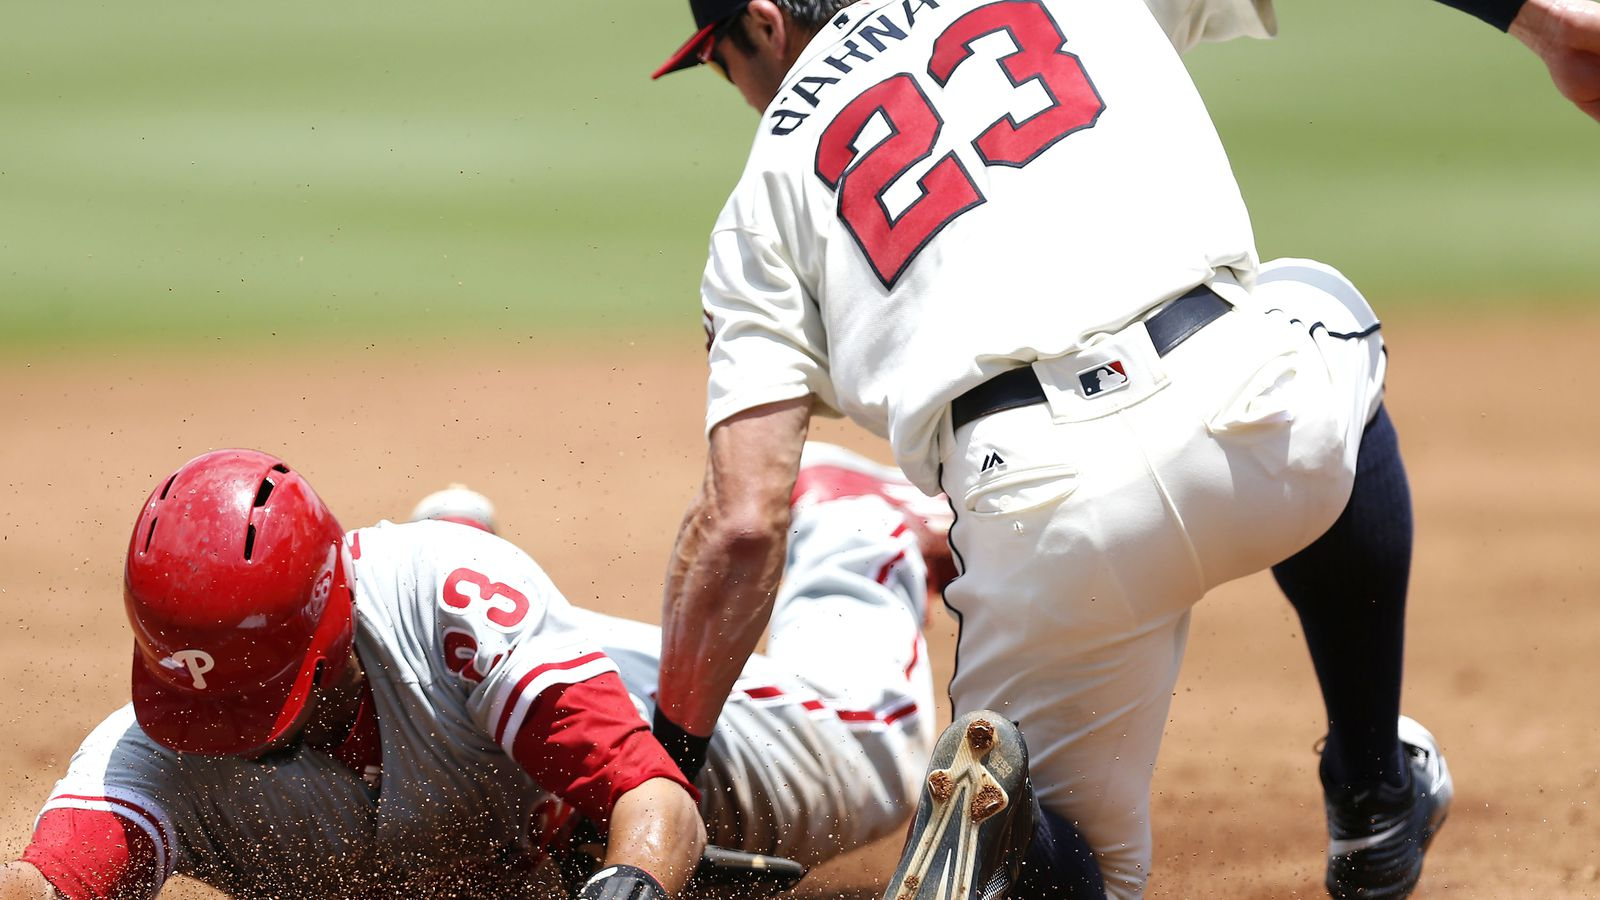 Phillies, Braves given further chance for things to happen correctly - The Good Phight